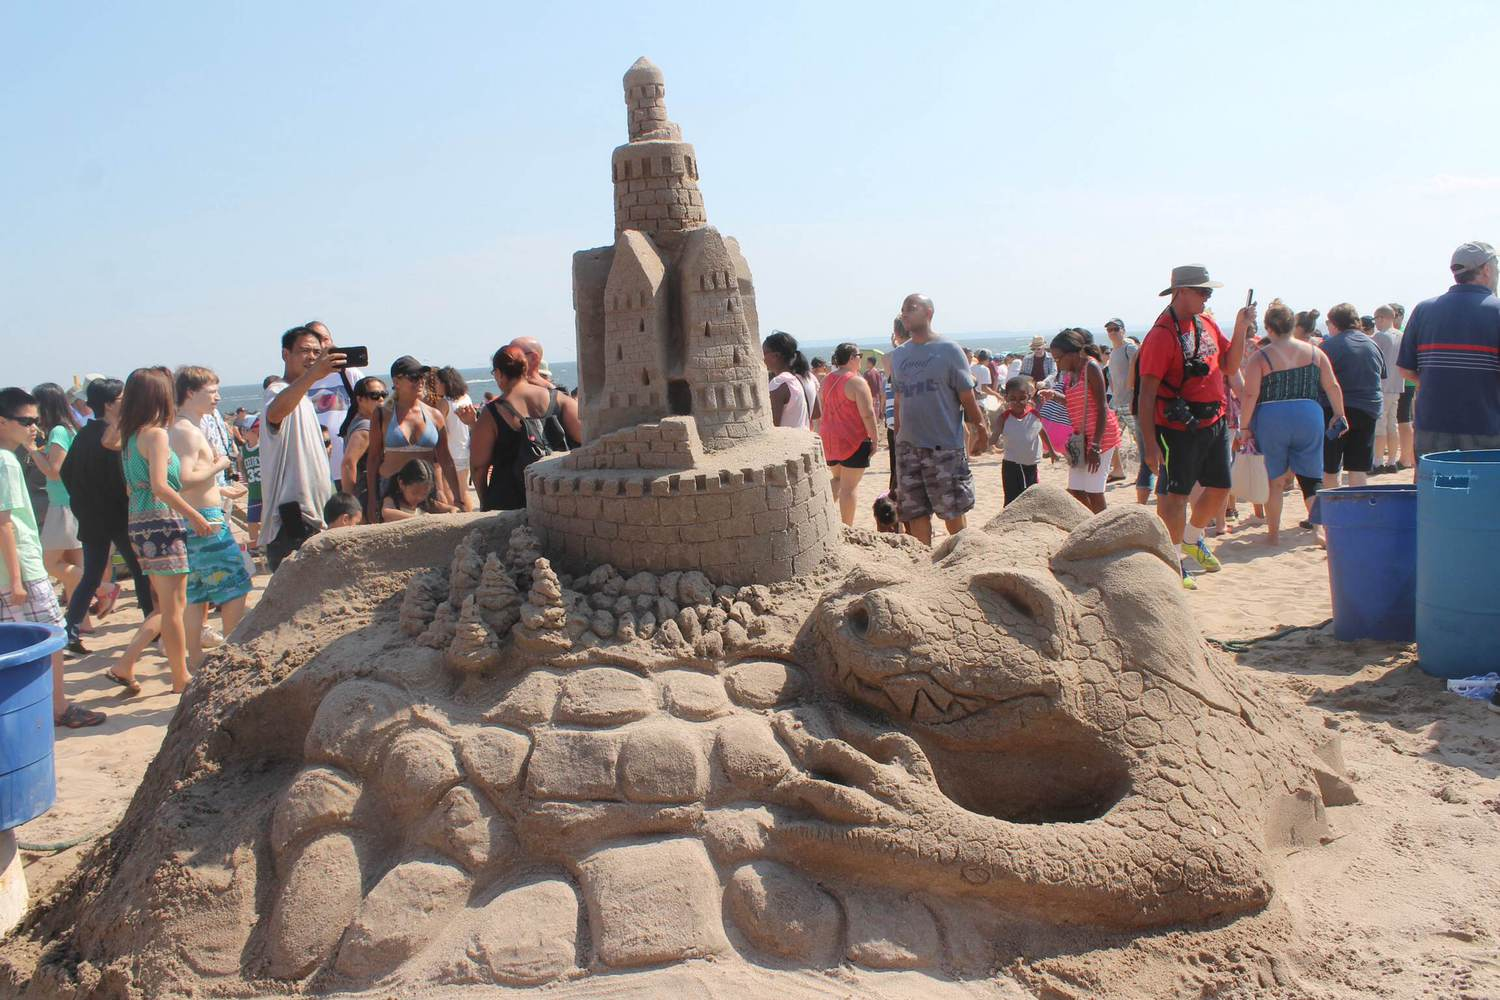 A fearsome dragon appears to be protecting (Or ready to swallow) this sand castle.